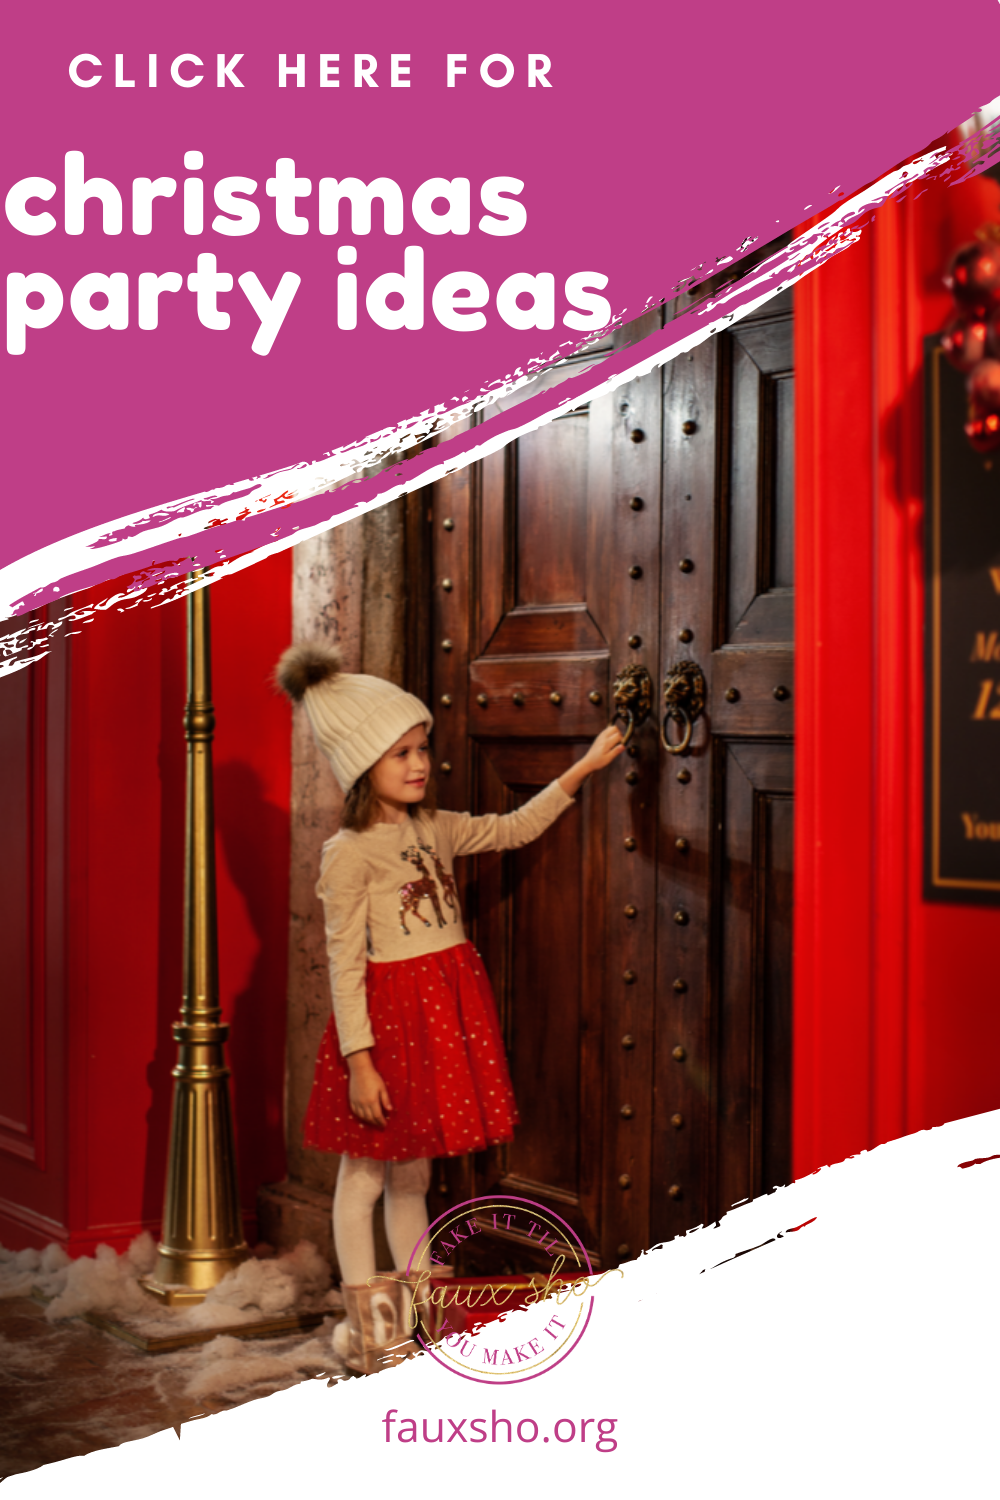 If you're planning on throwing a Christmas party for your kids, family, or co-workers, then you've got to check out these Christmas party ideas! #FauxShoBlog #ChristmasPartyIdeas #KidsChristmasPartyIdeas #FamilyChristmasPartyIdeas #WorkChristmasPartyIdeas  #christmasparty